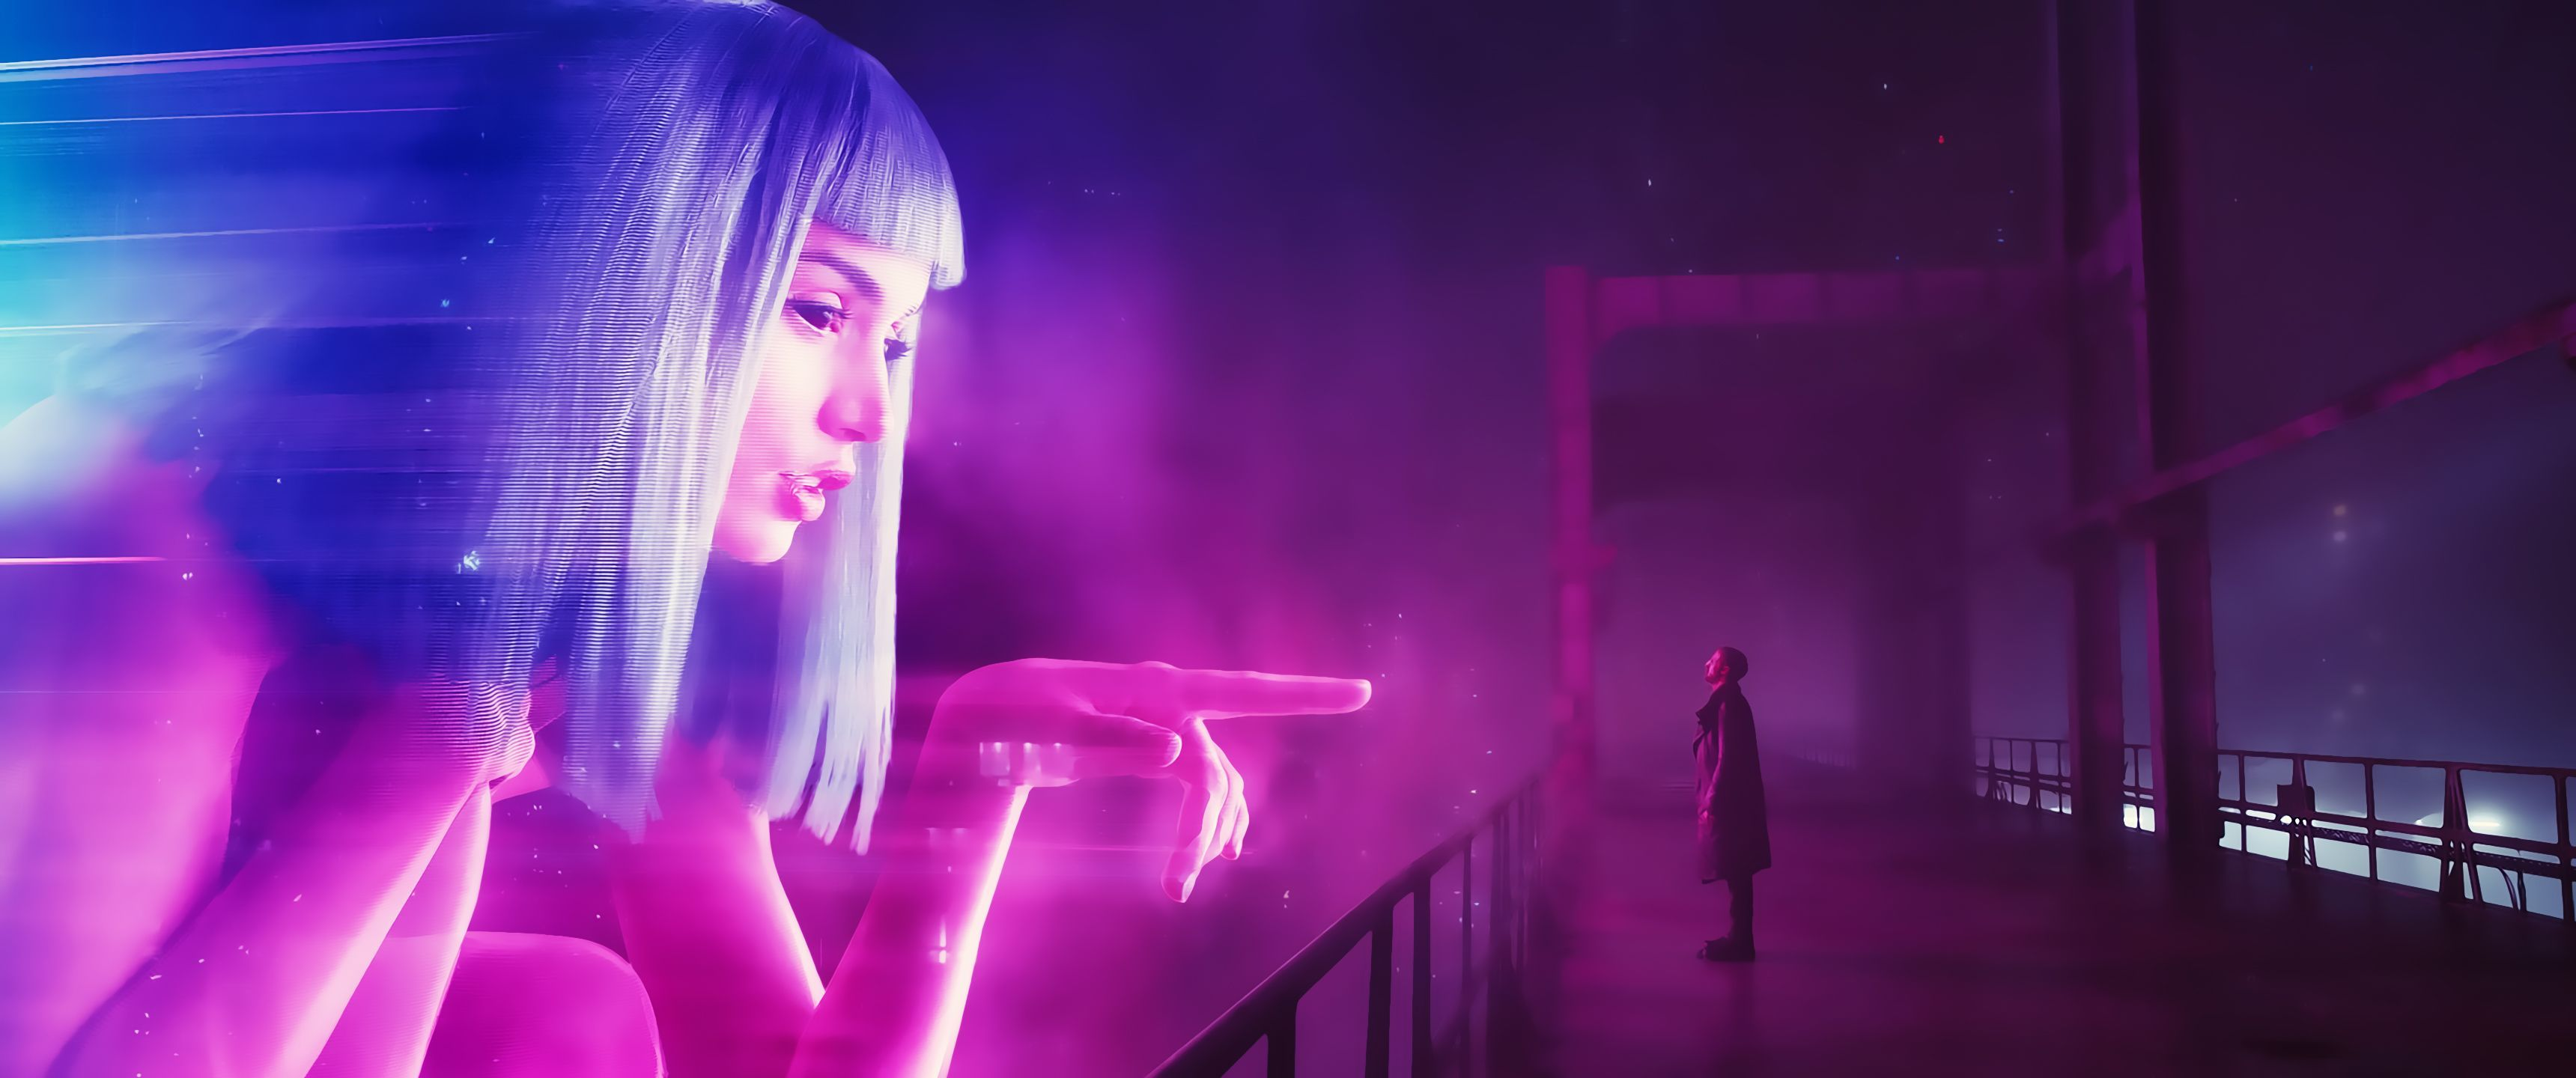 Blade Runner 2049 4k Wallpapers Top Free Blade Runner 2049